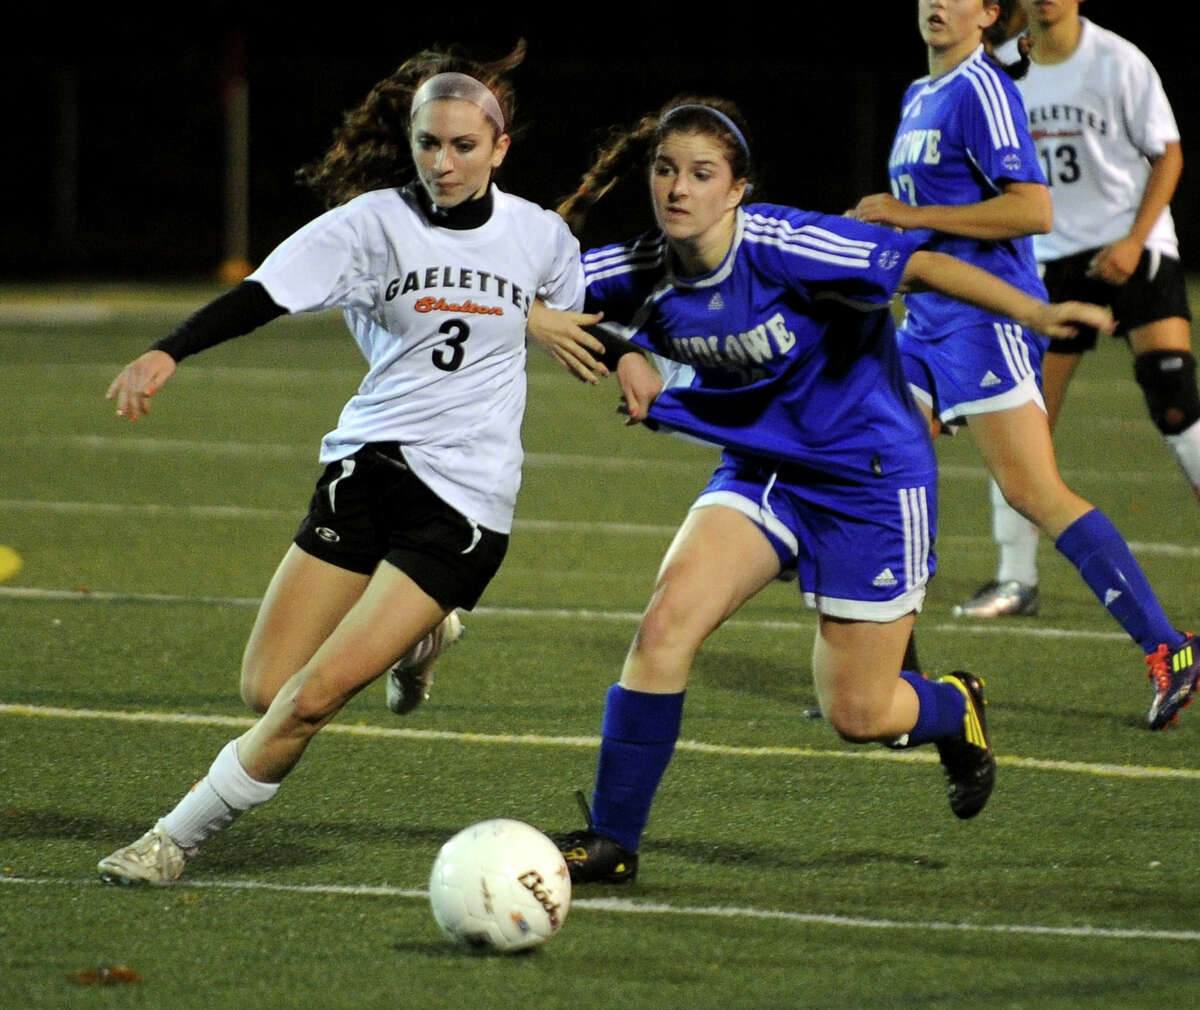 Highlights from CIAC Class LL girls' soccer tournament action between Shelton and Fairfield Ludlowe in Shelton, Conn. on Thursday November 10, 2011.